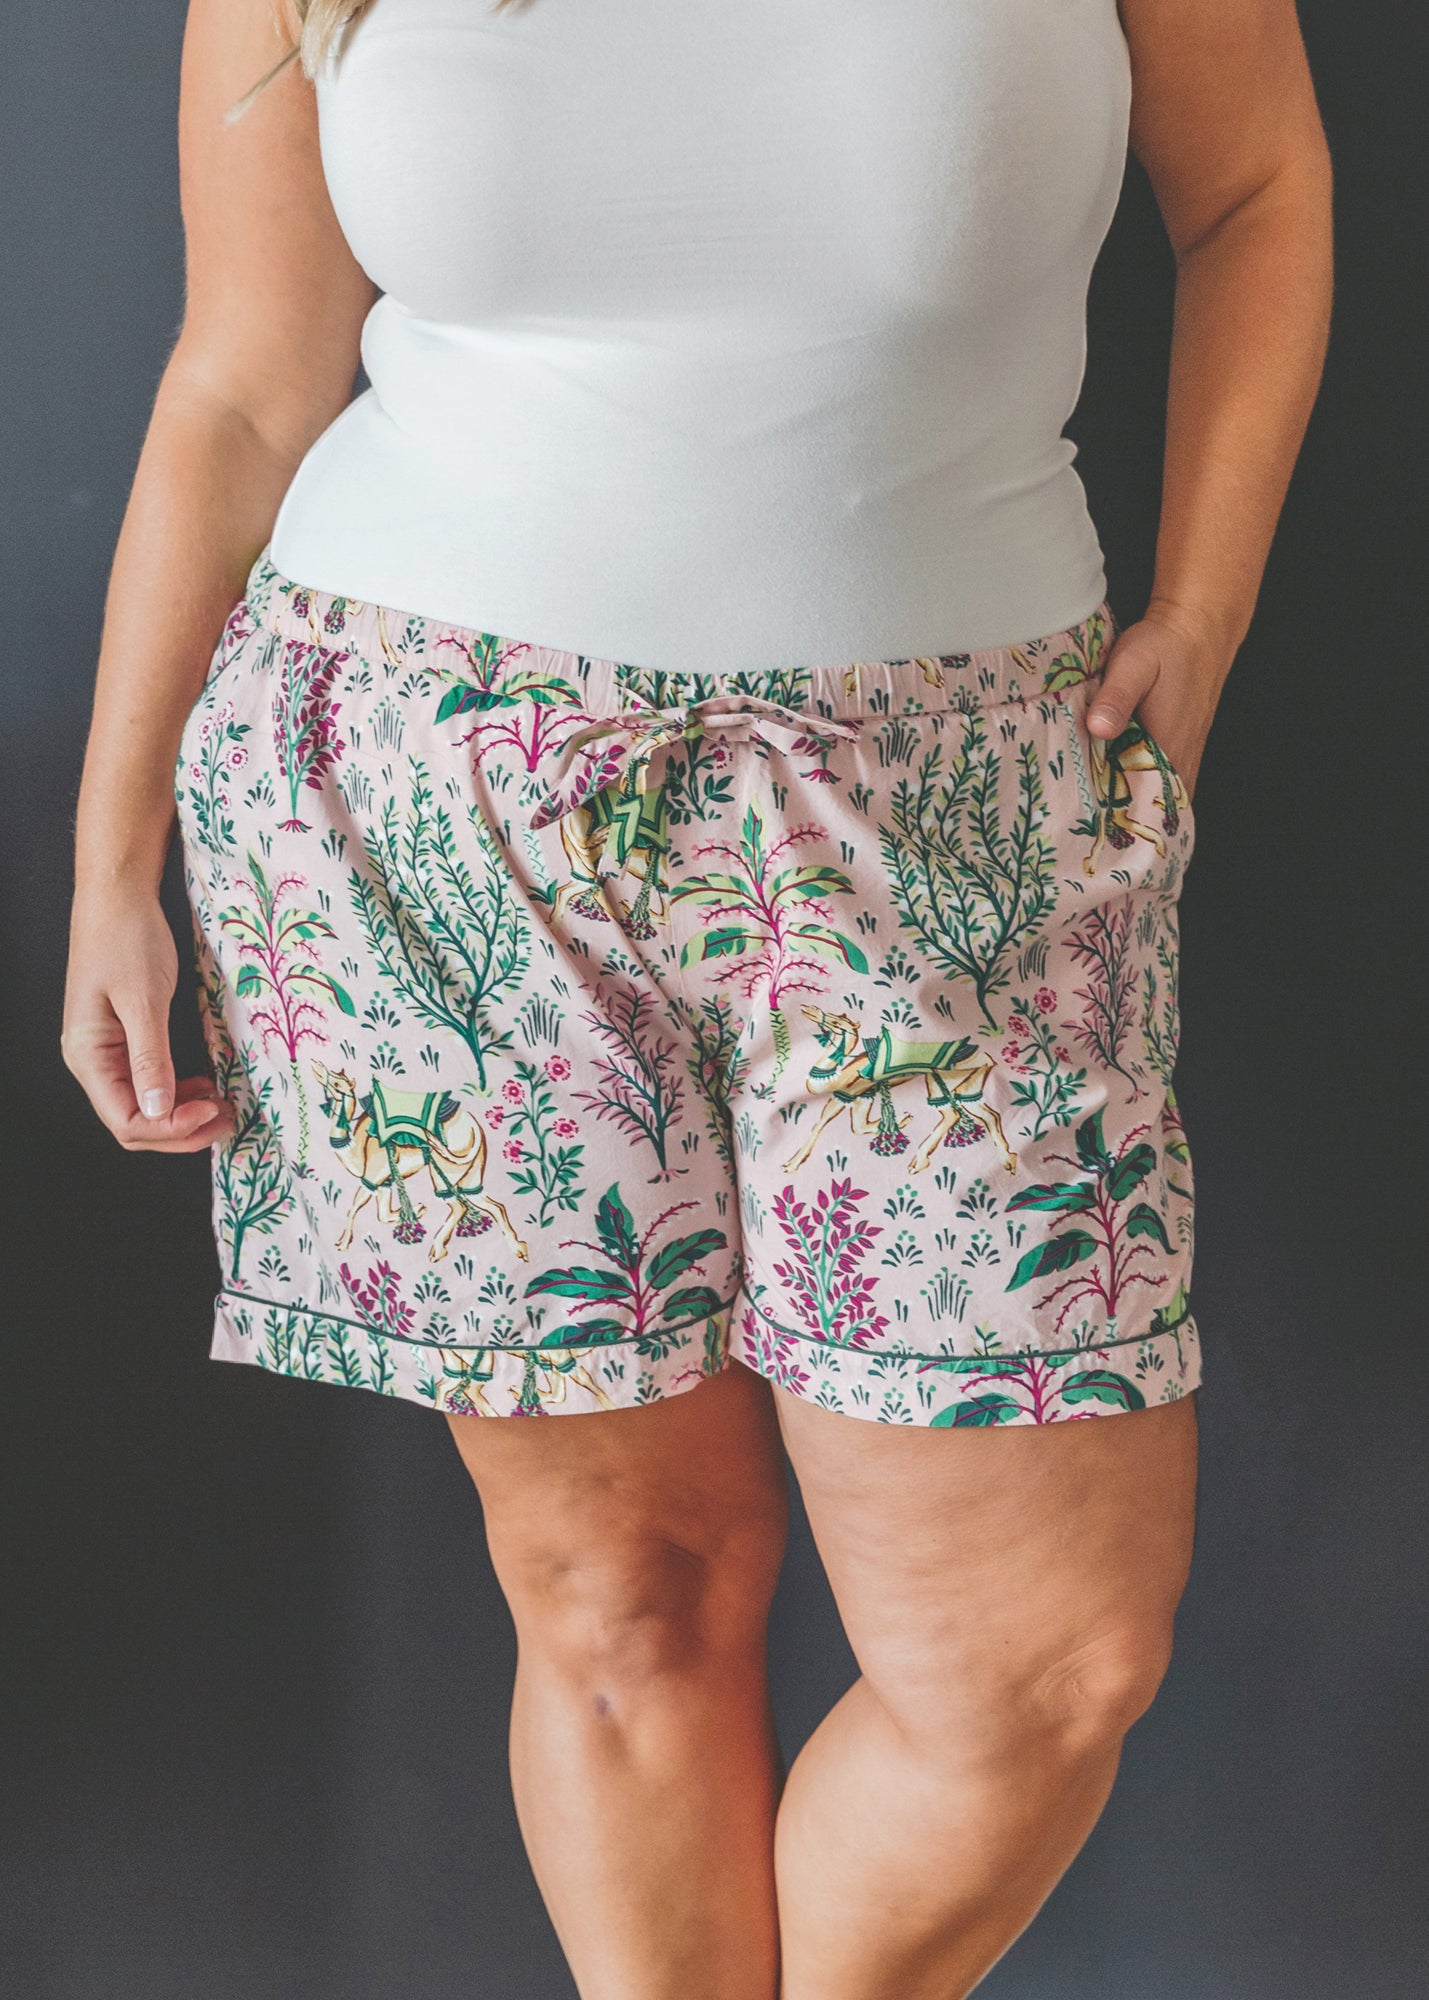 Camel's Courtyard - Pajama Shorts - Rose